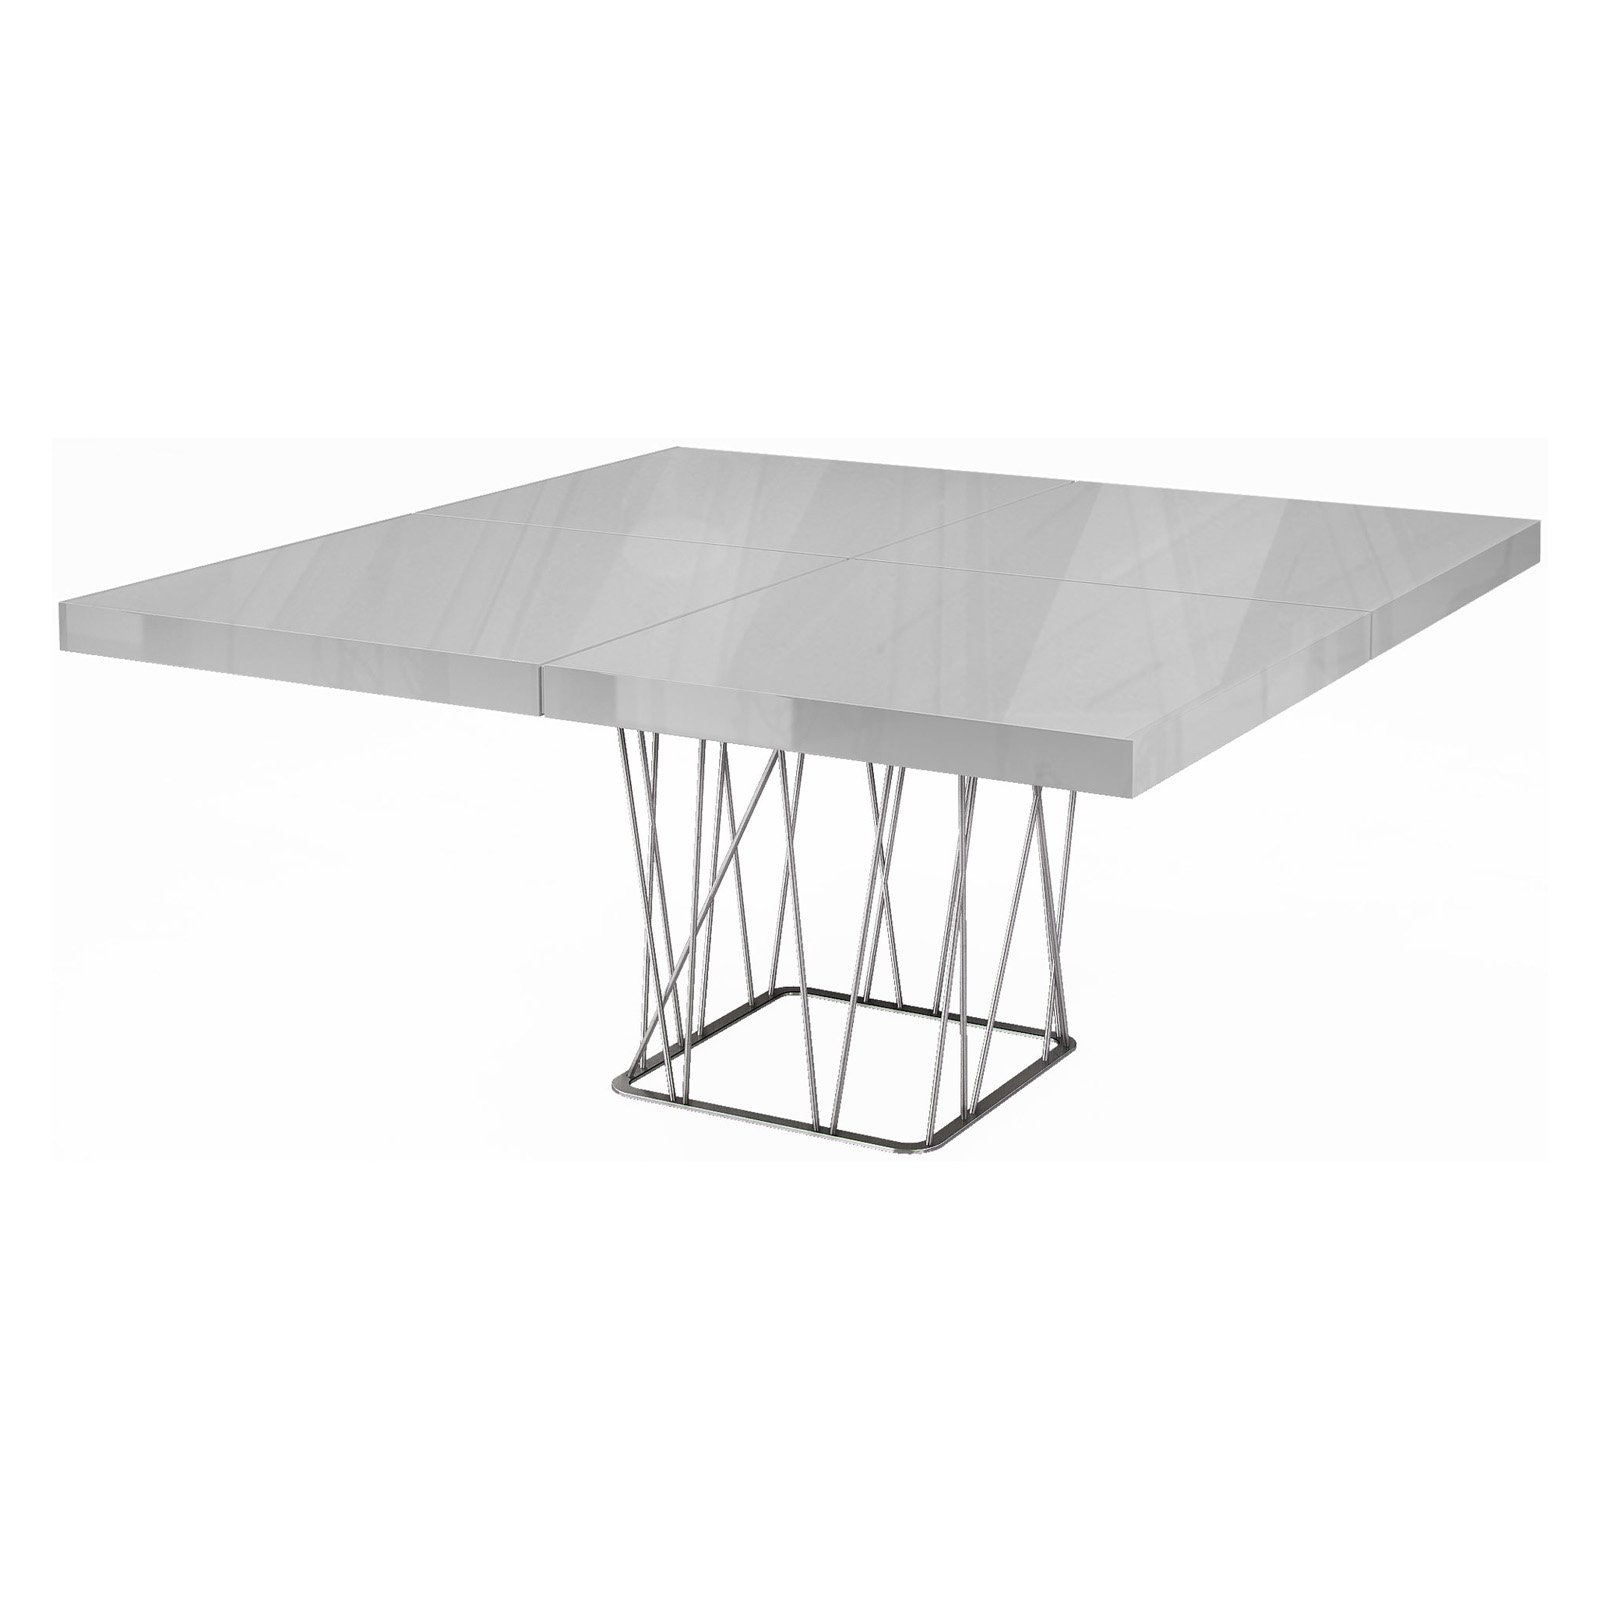 Modloft Clarges Dining Table White